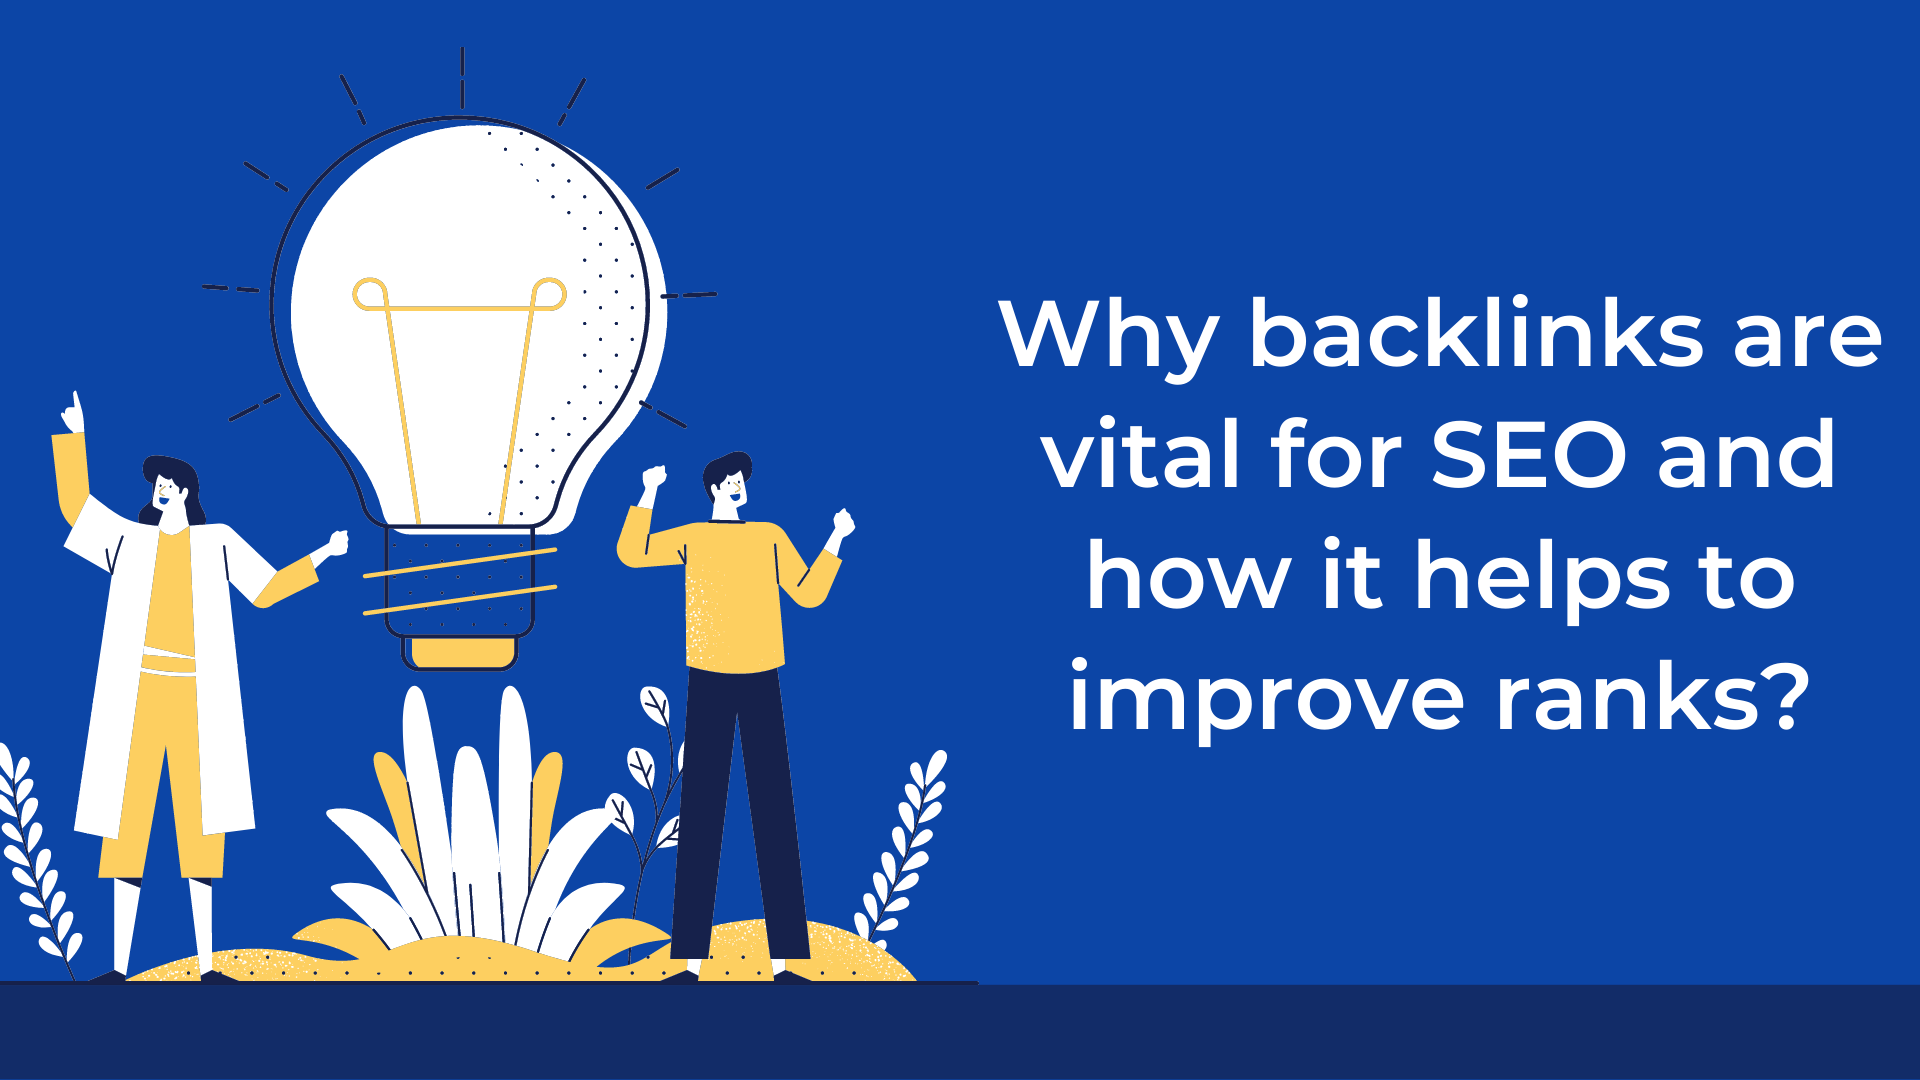 Why backlinks are vital for SEO and how it helps to improve ranks